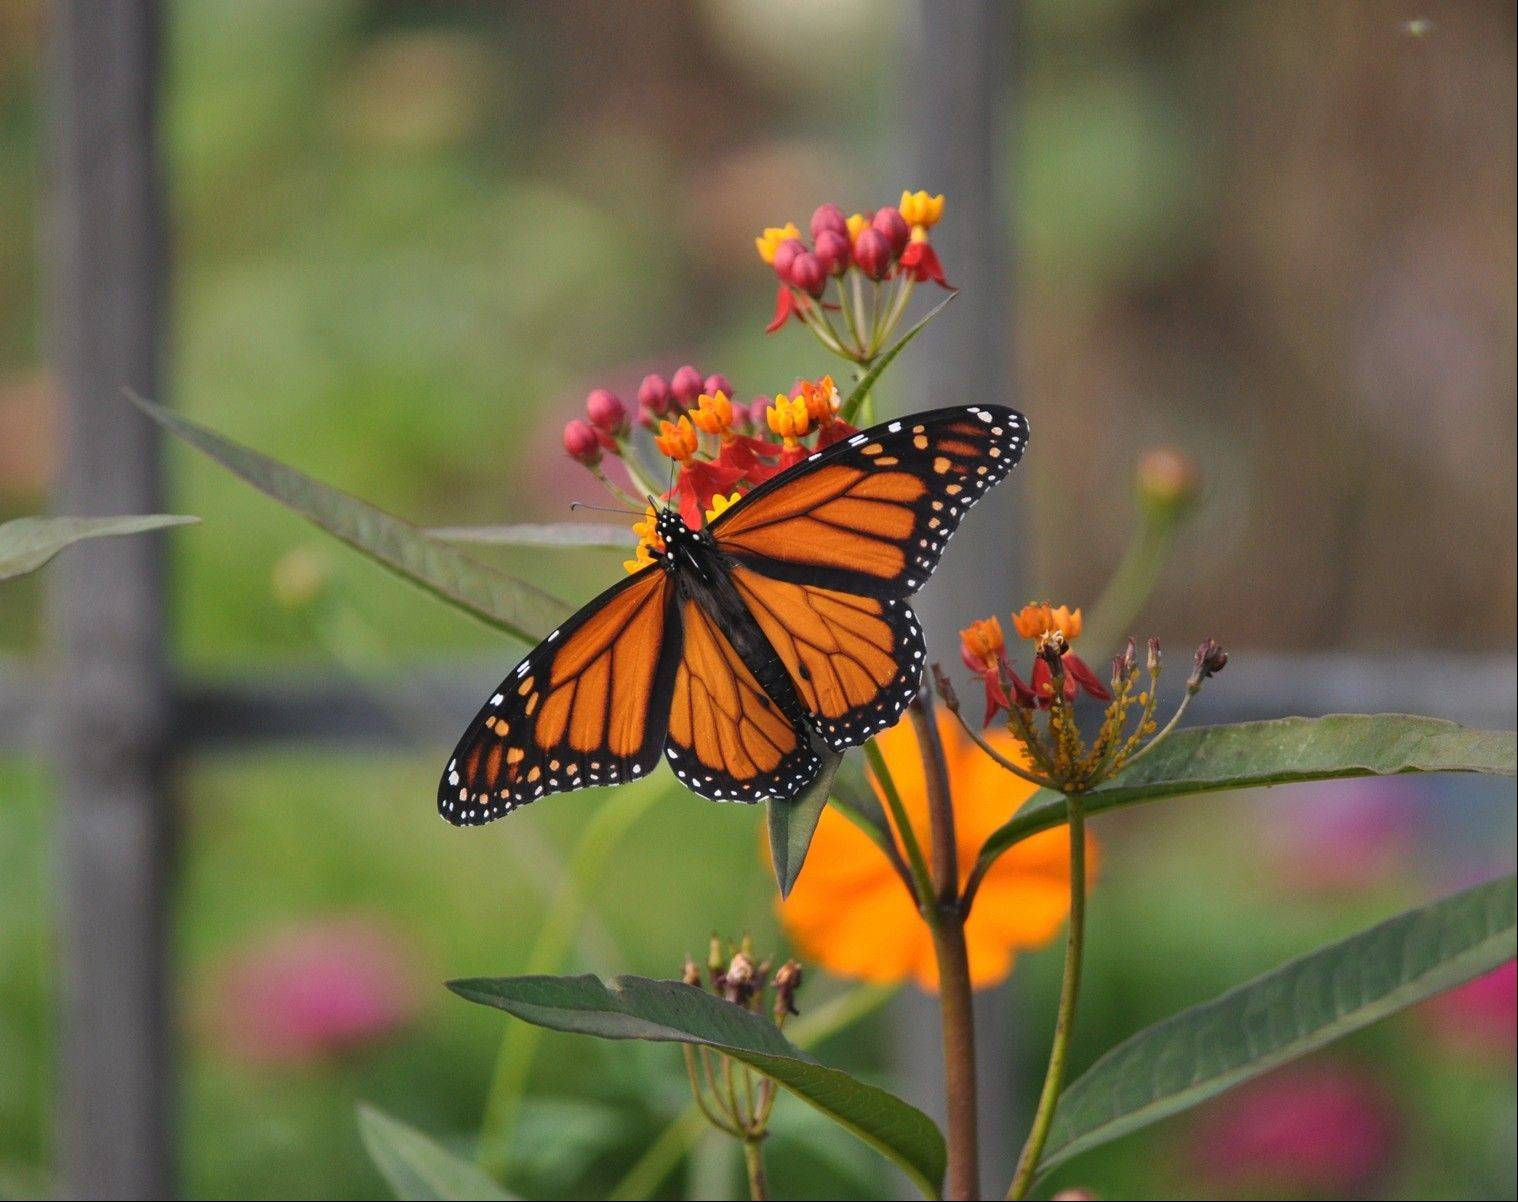 Tom Walsh shot this colorful photo of monarch butterflies at Cantigny Park's Idea Garden in Wheaton.